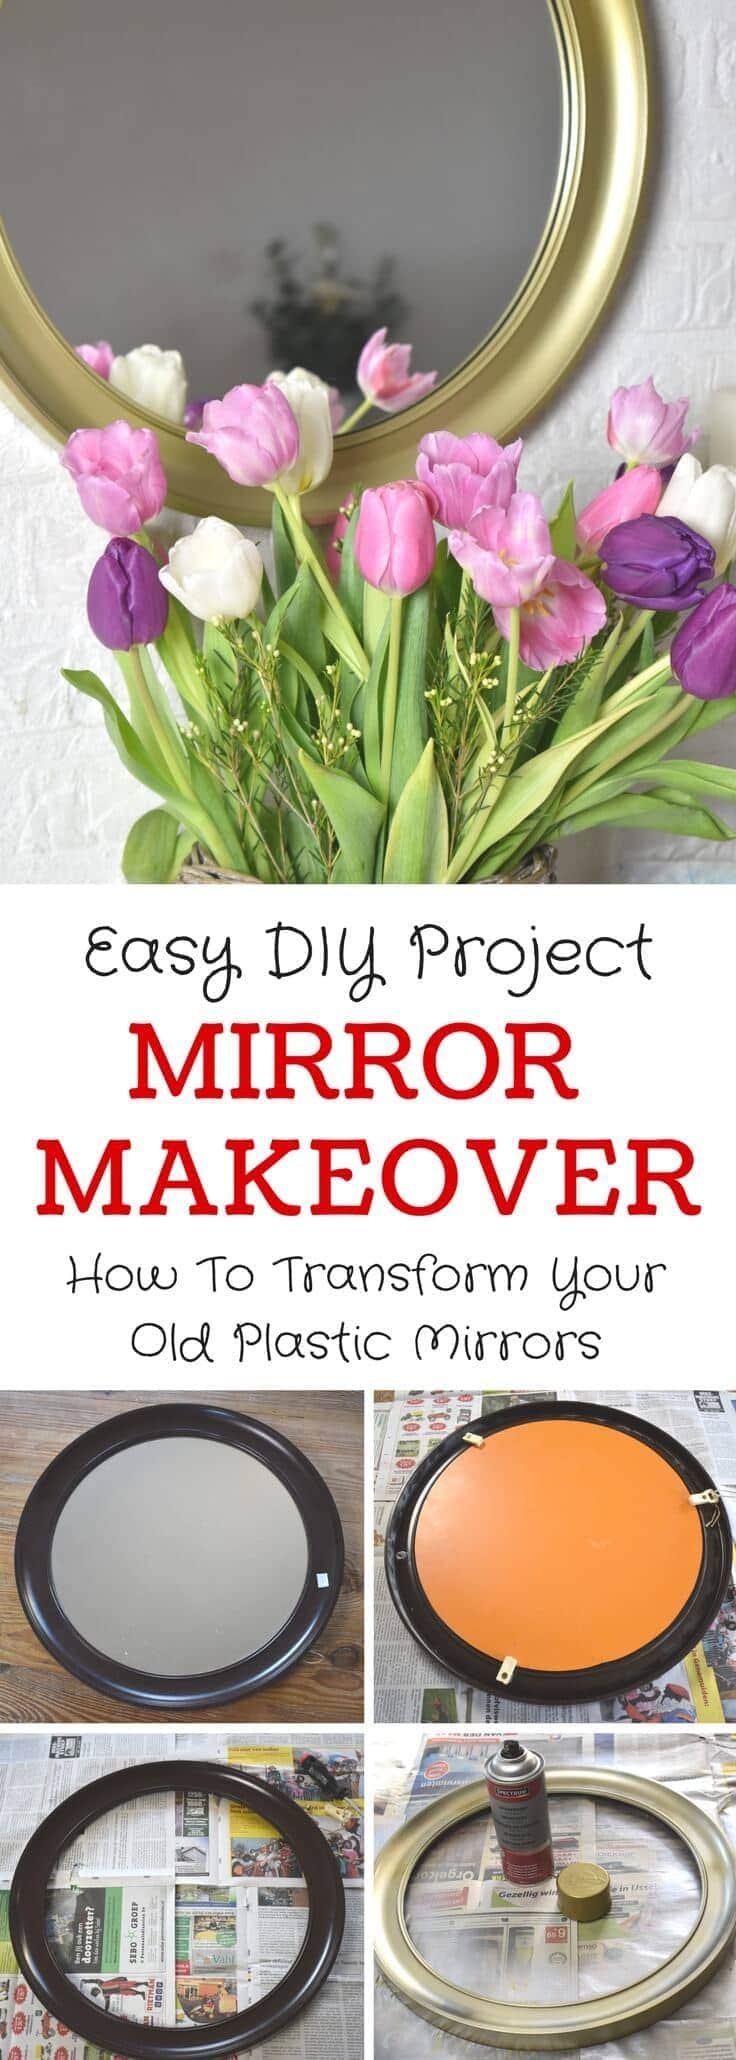 Thrift Store Plastic Mirror Upcyle - Learn how to makeover those old ugly plastic mirrors into beautiful and chic home decor idea.